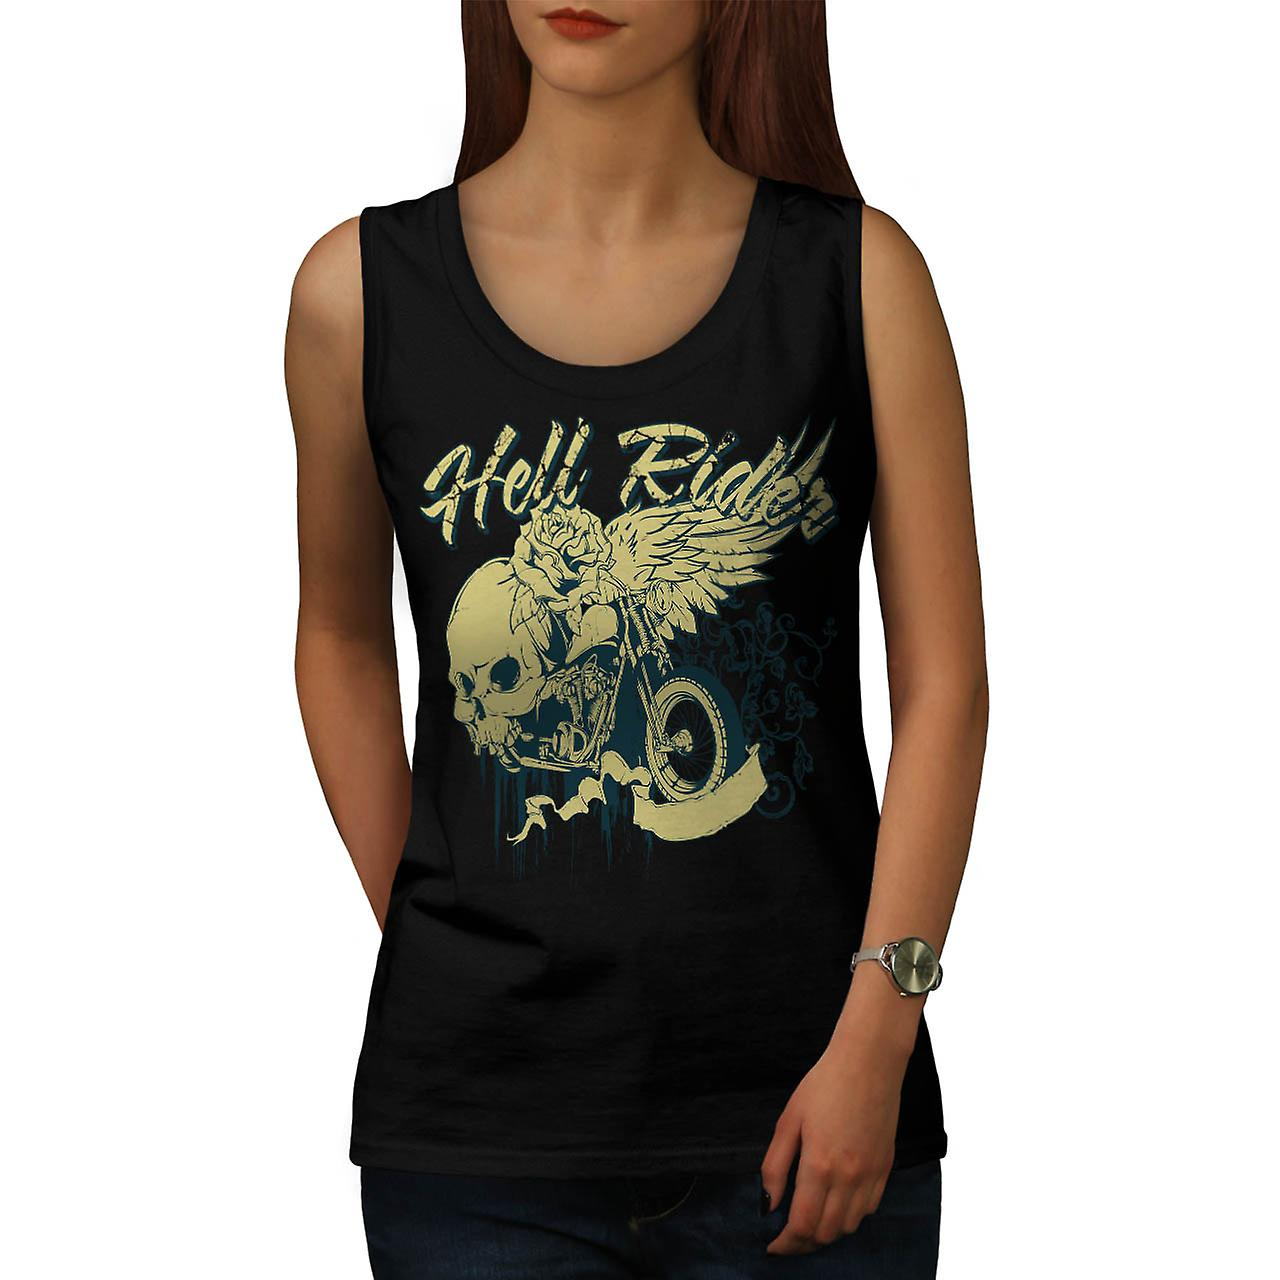 Hell RIder Biker metallo donne Tank Top nero | Wellcoda